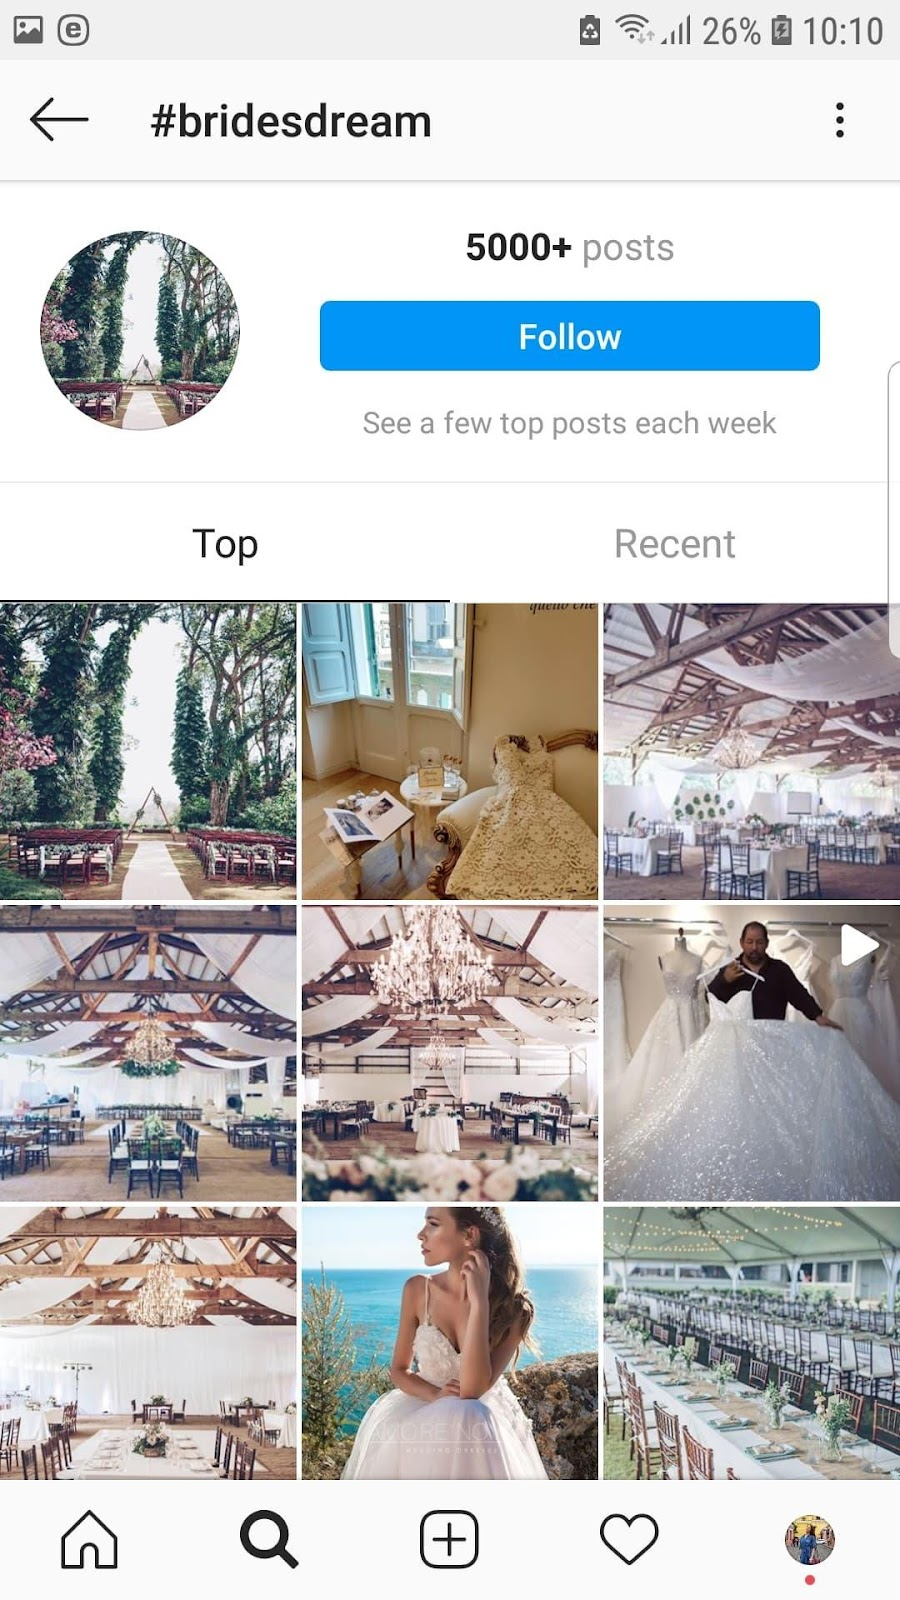 Hashtags on Instagram, #BridesDream